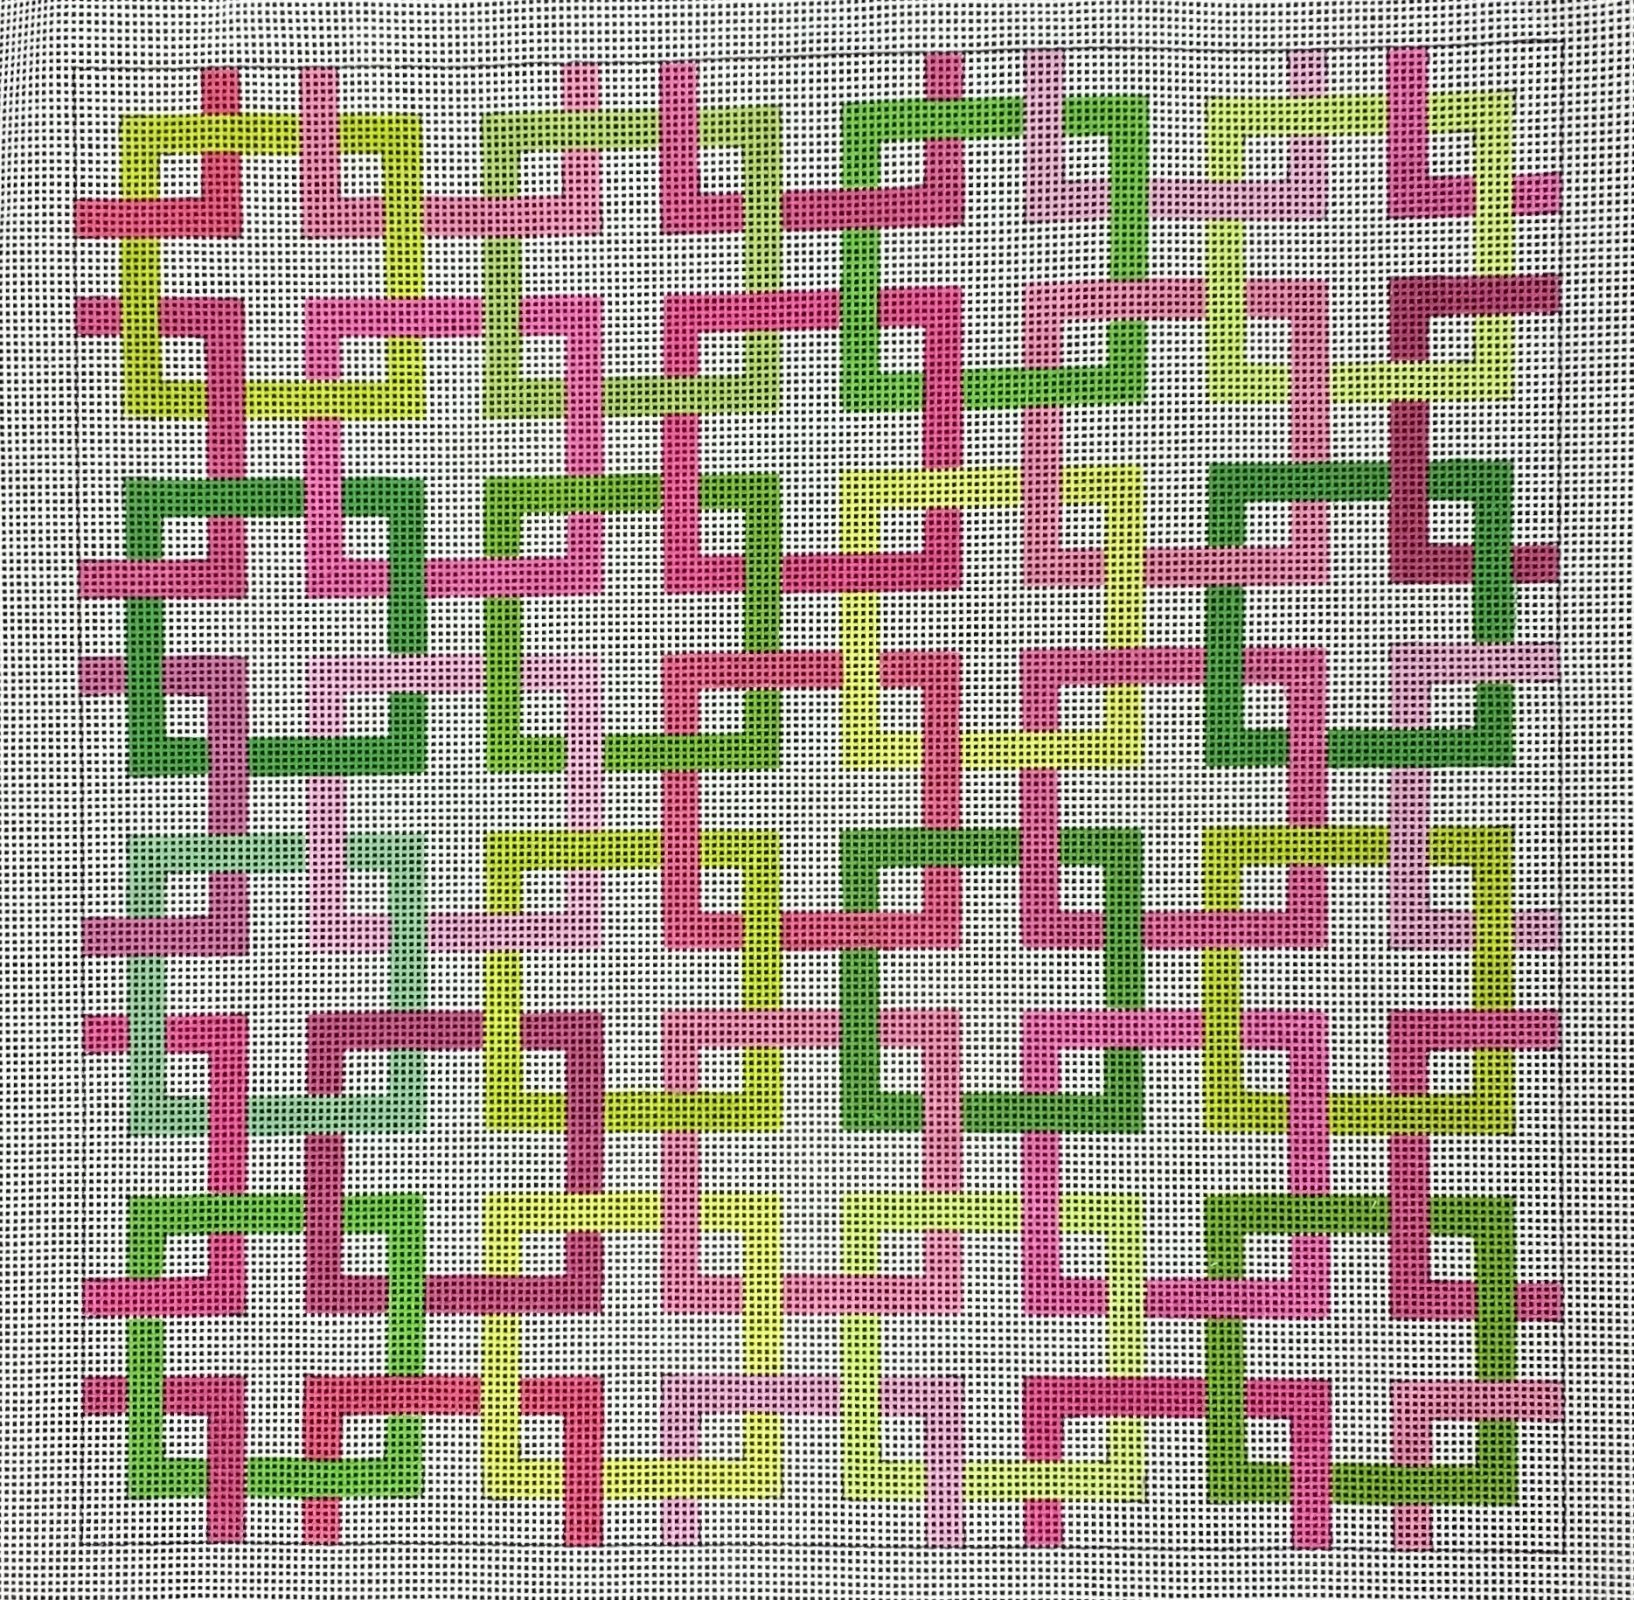 interlocking squares